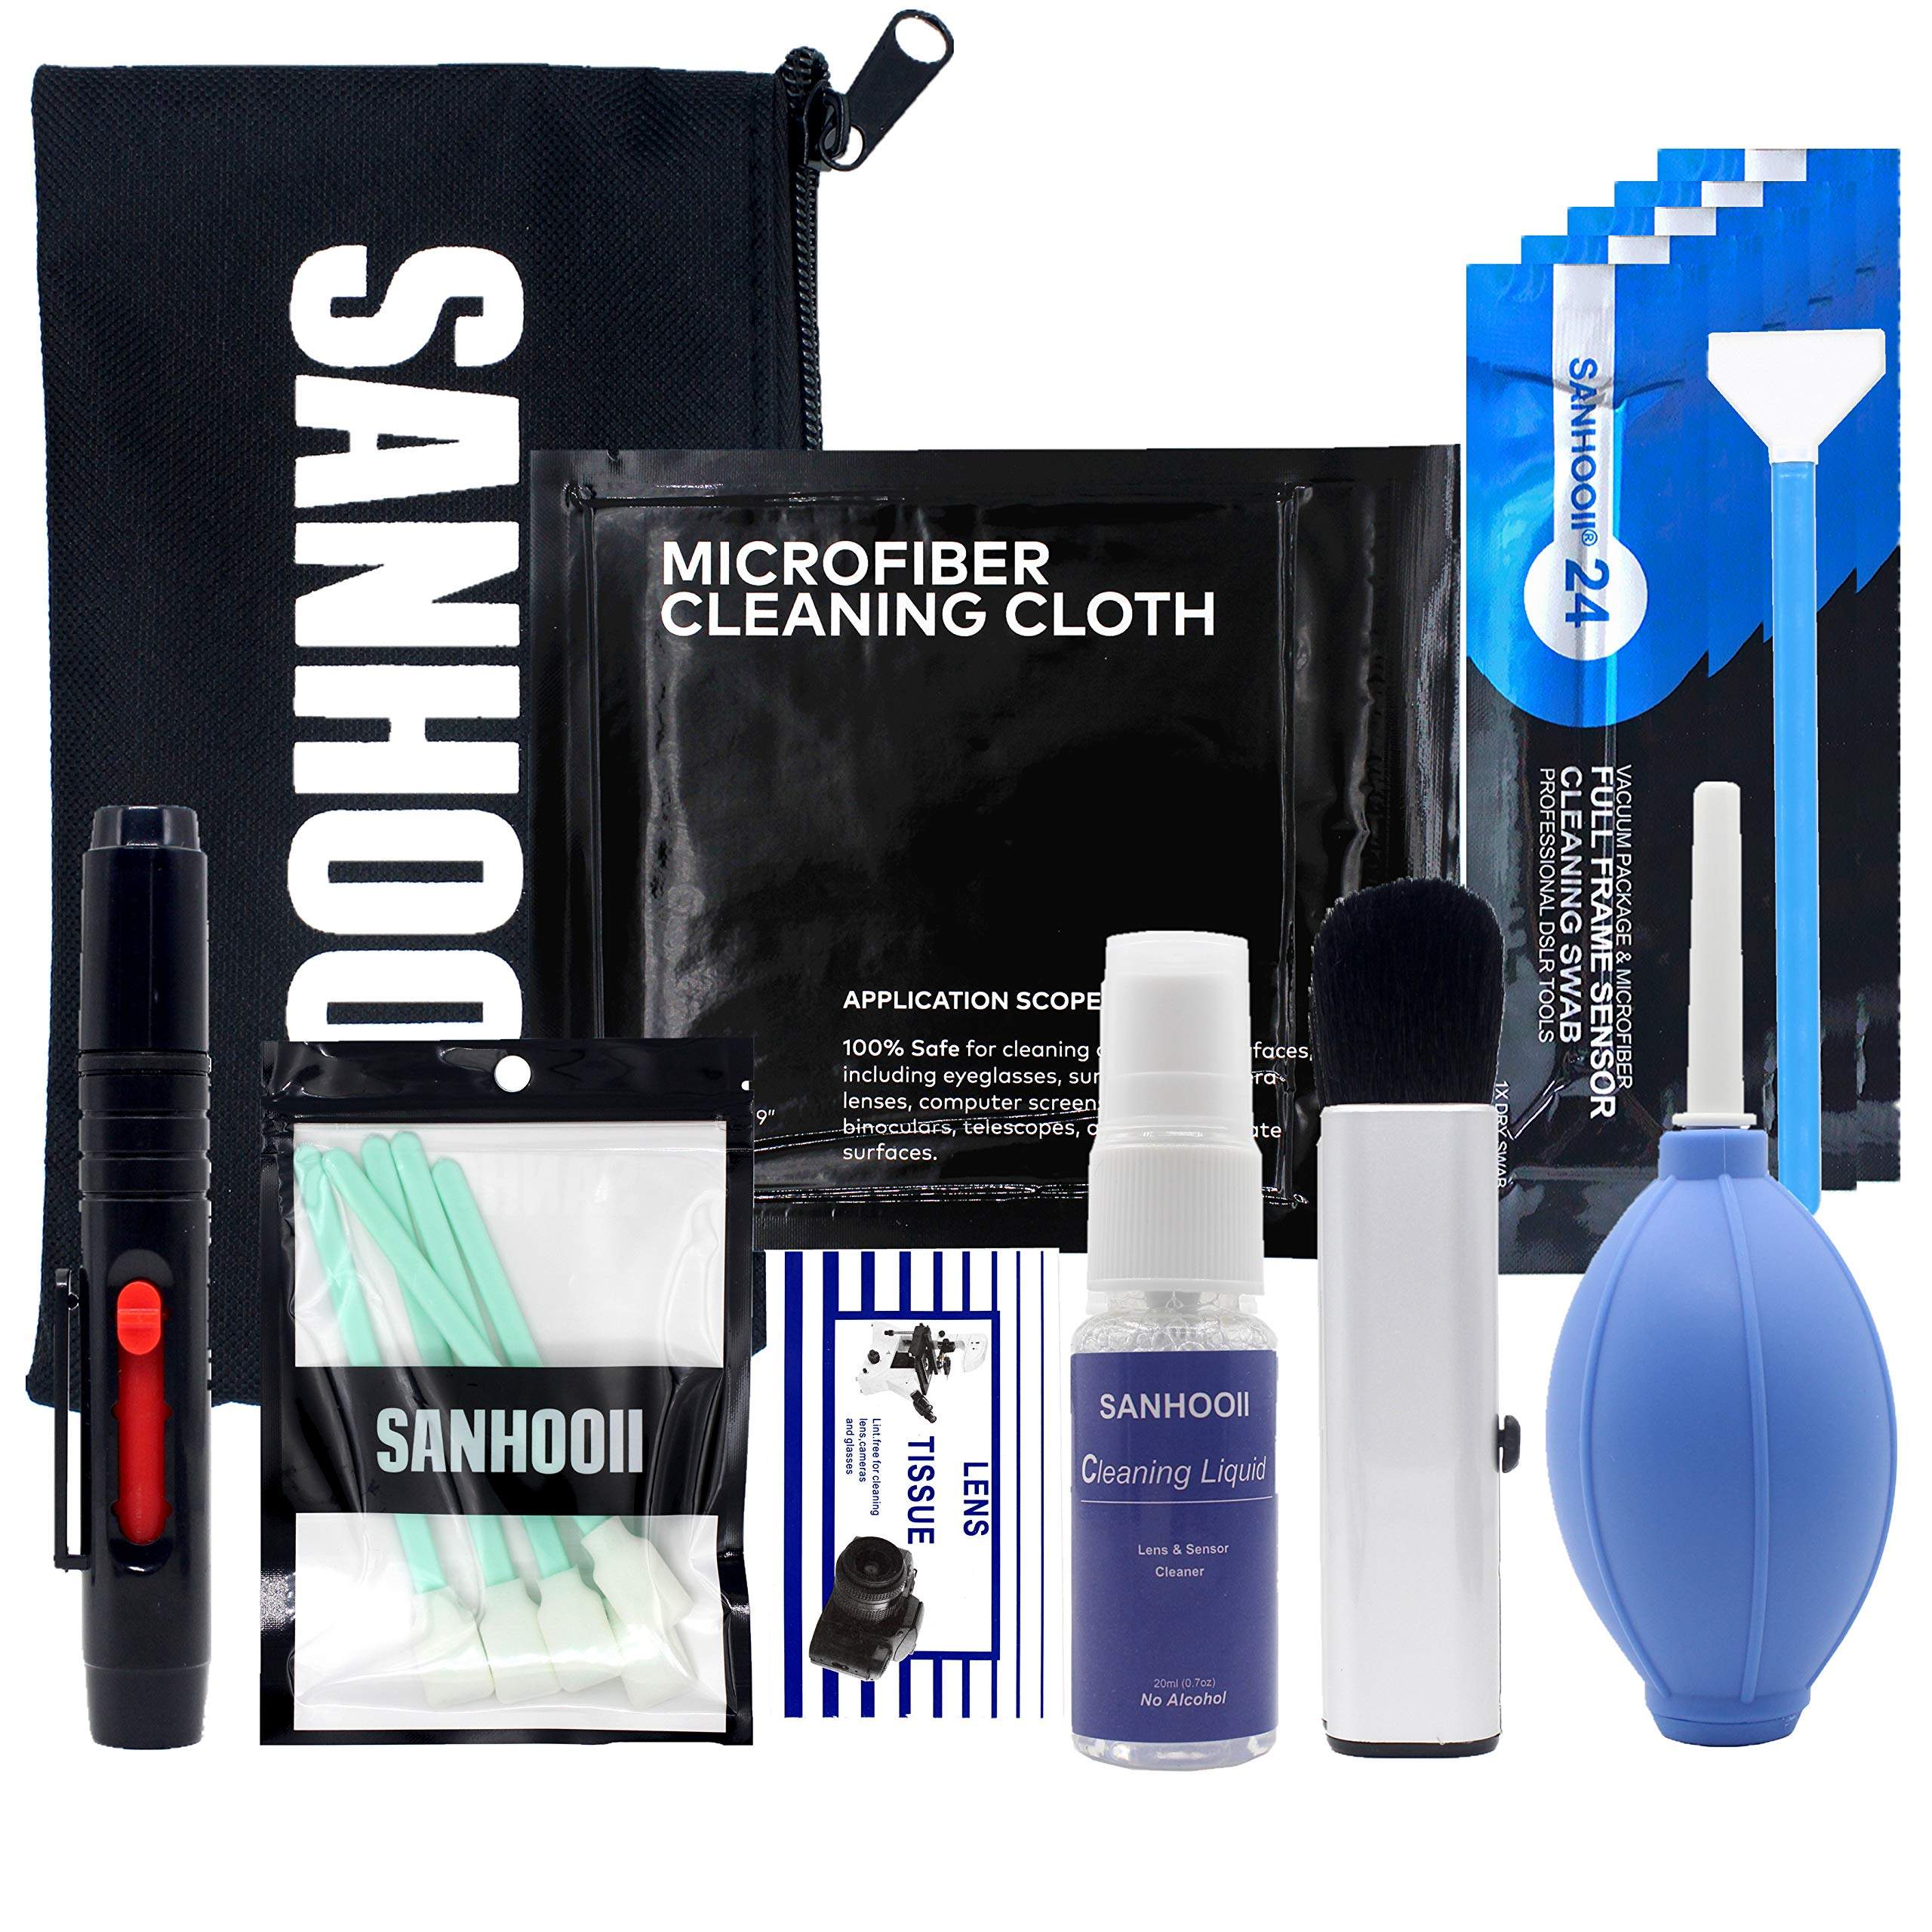 SANHOOII Camera Cleaning kit for DSLR or SLR Cameras Lens Cleaning and Full Frame Sensor Cleaning by SANHOOII